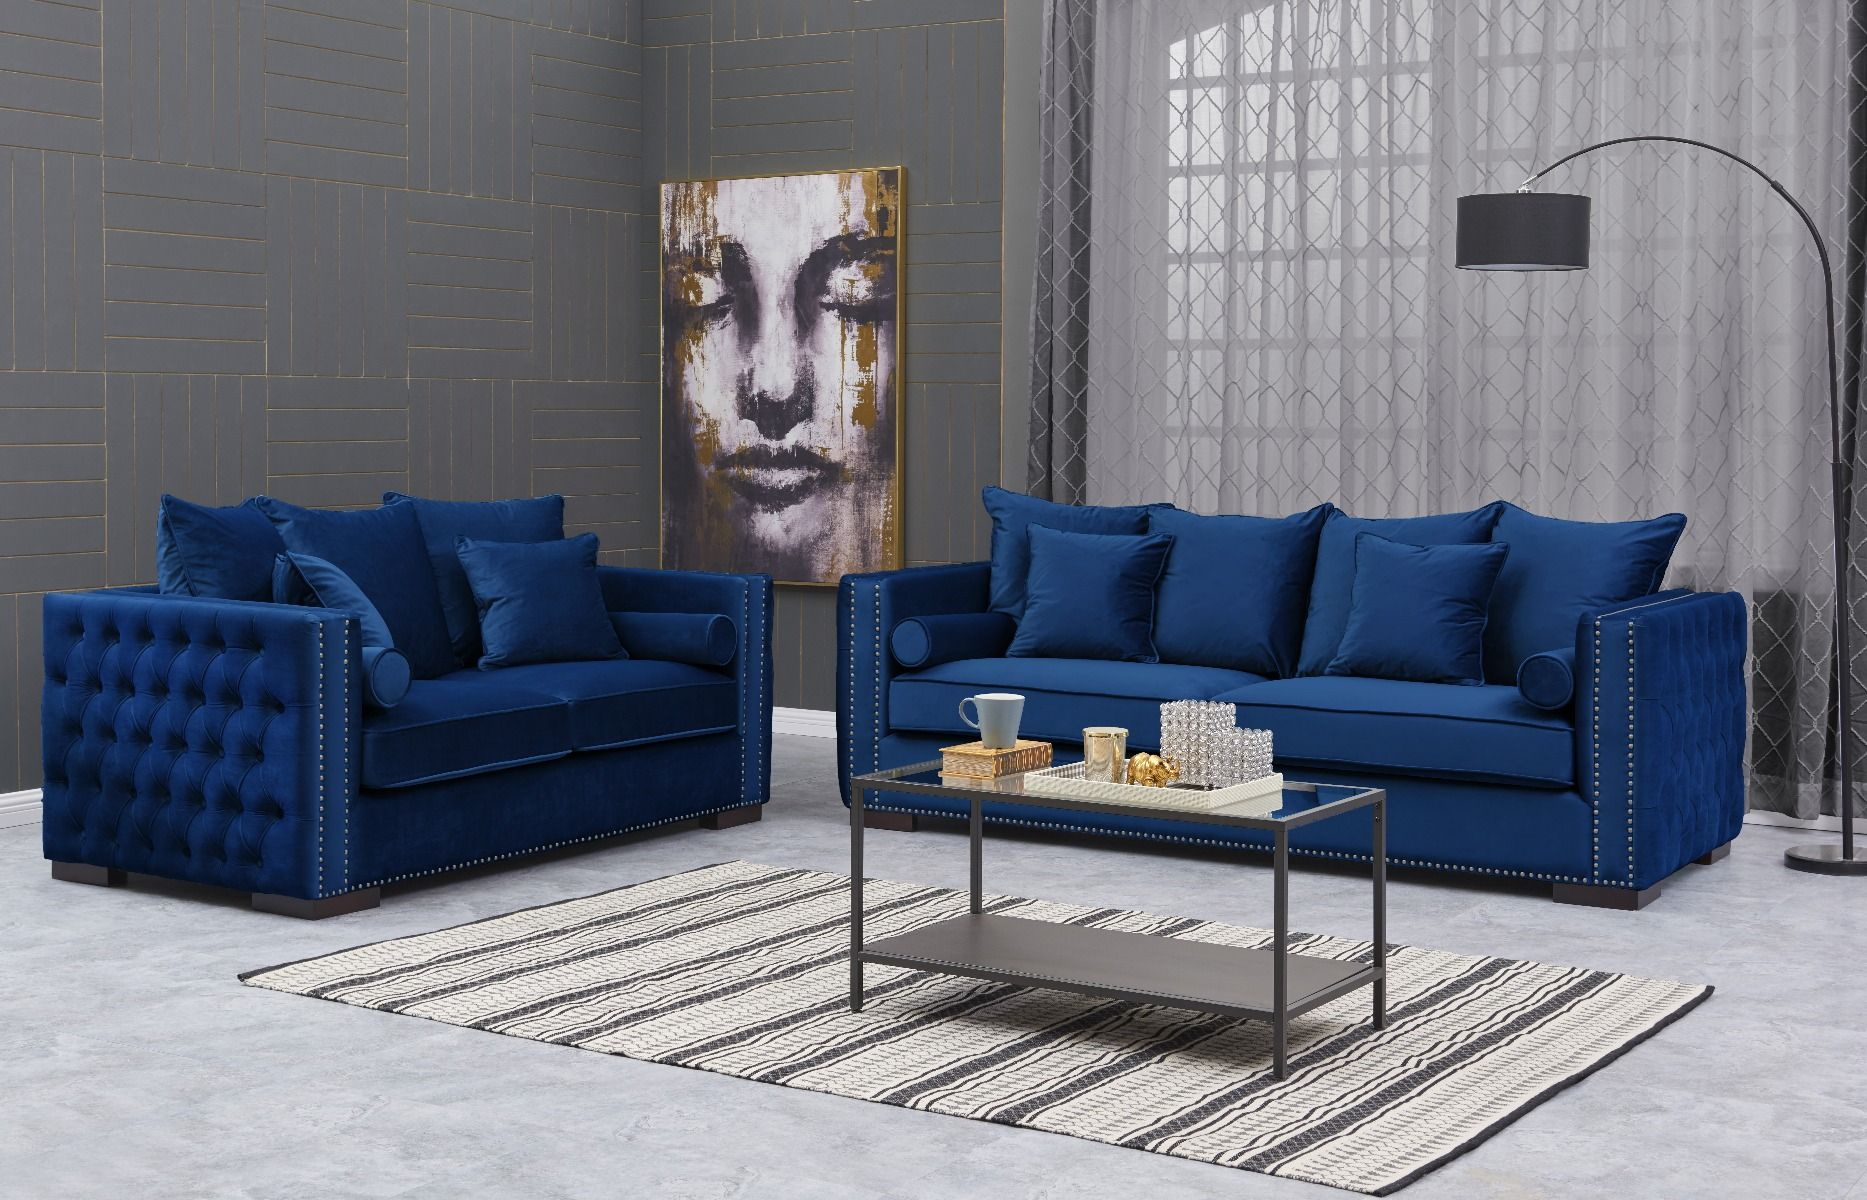 Royal Blue Velvet Moscow Sofa Sets Chic Concept